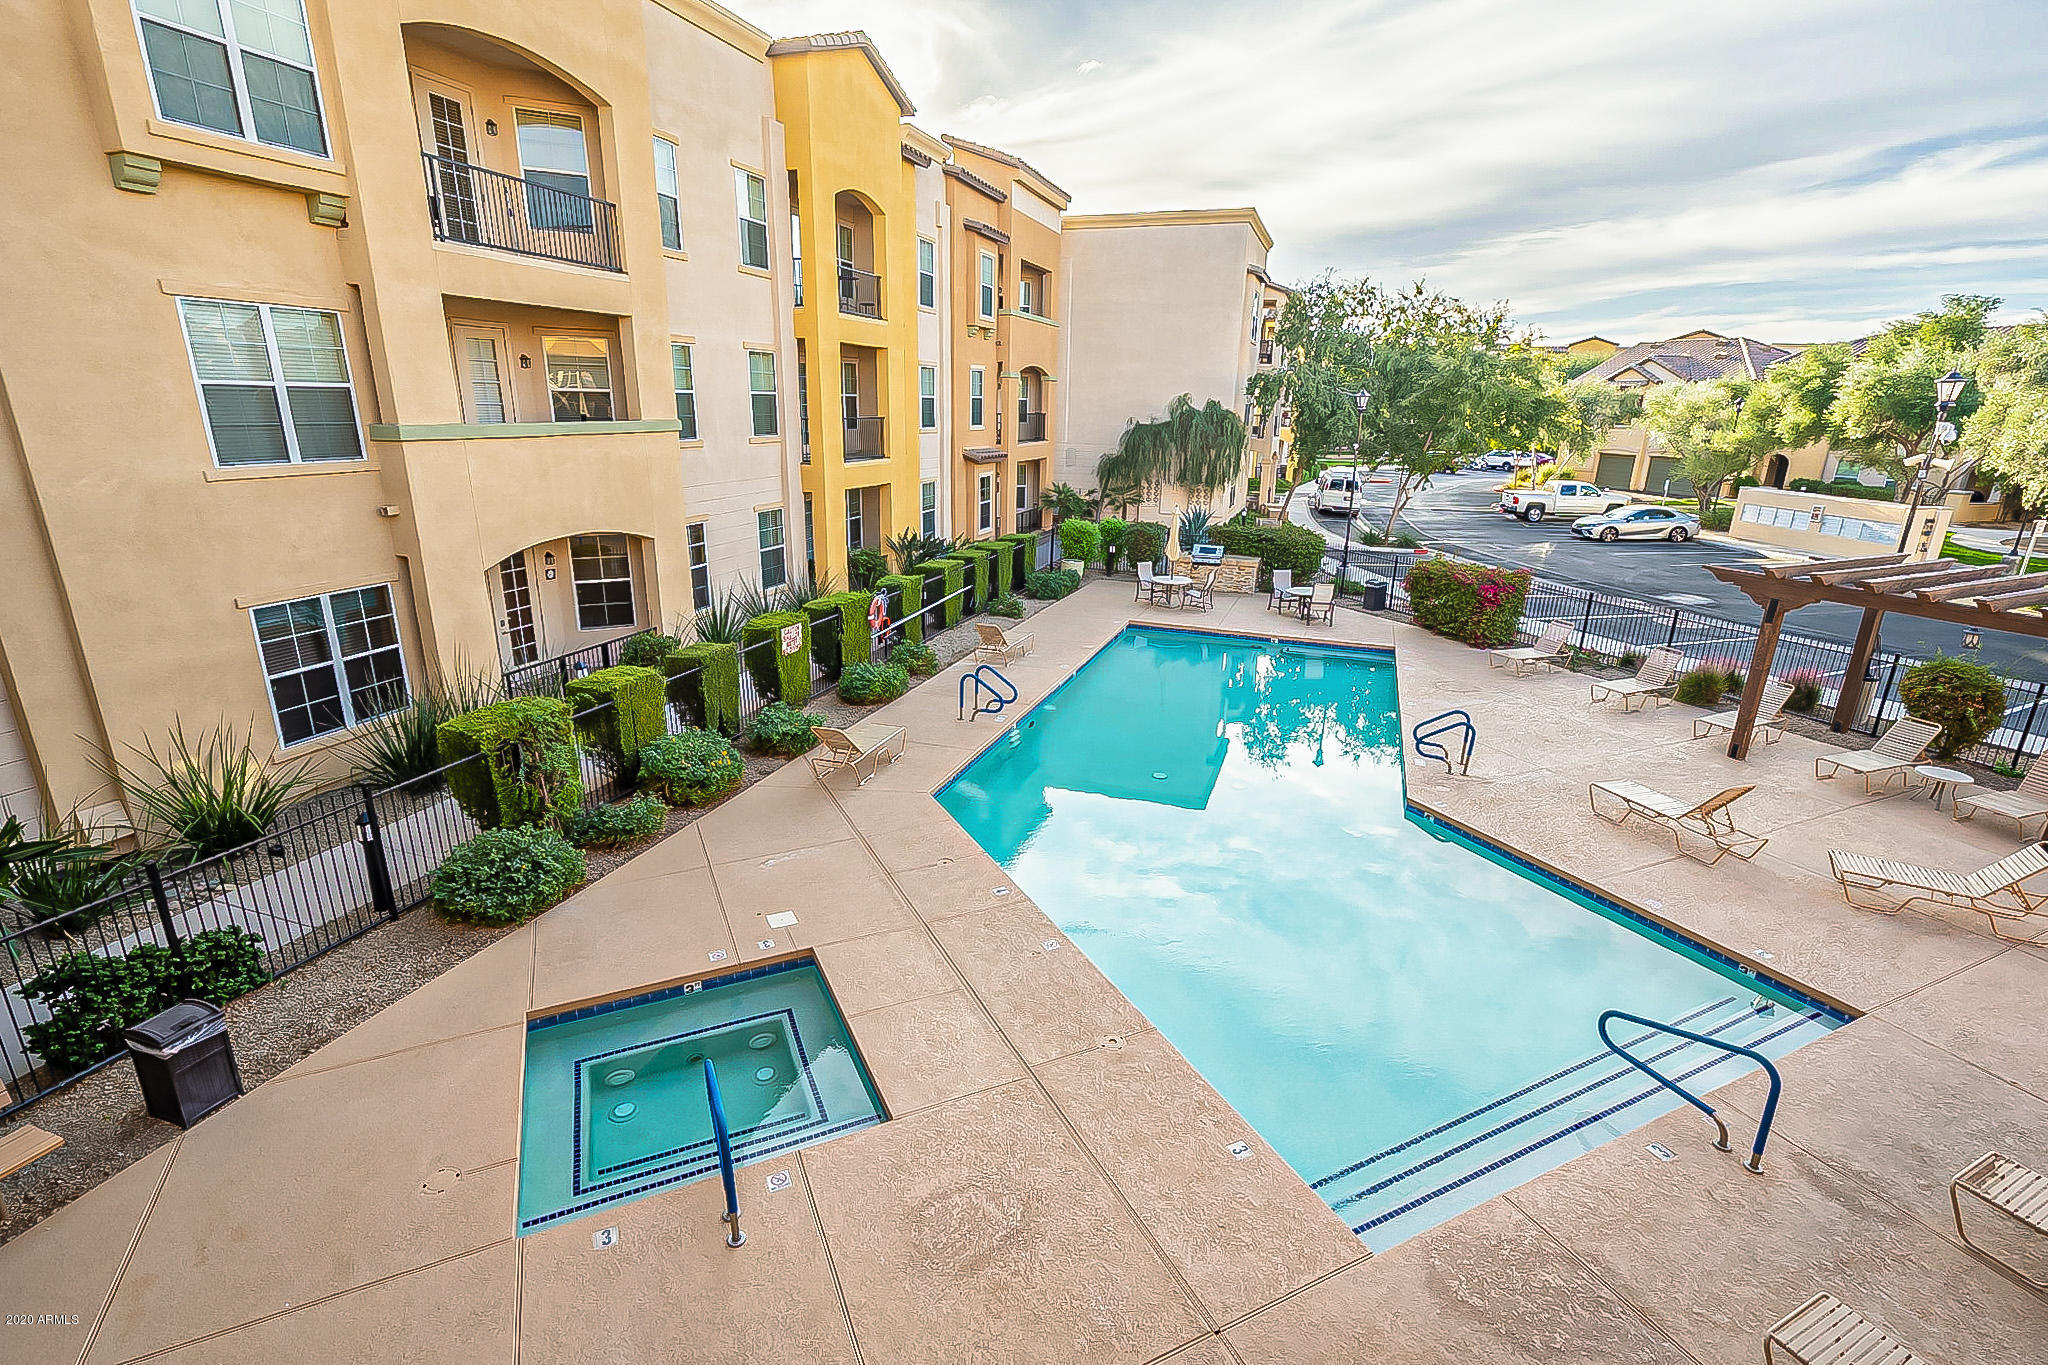 MLS 6154563 14575 W MOUNTAIN VIEW Boulevard Unit 11306, Surprise, AZ 85374 Surprise AZ Condo or Townhome